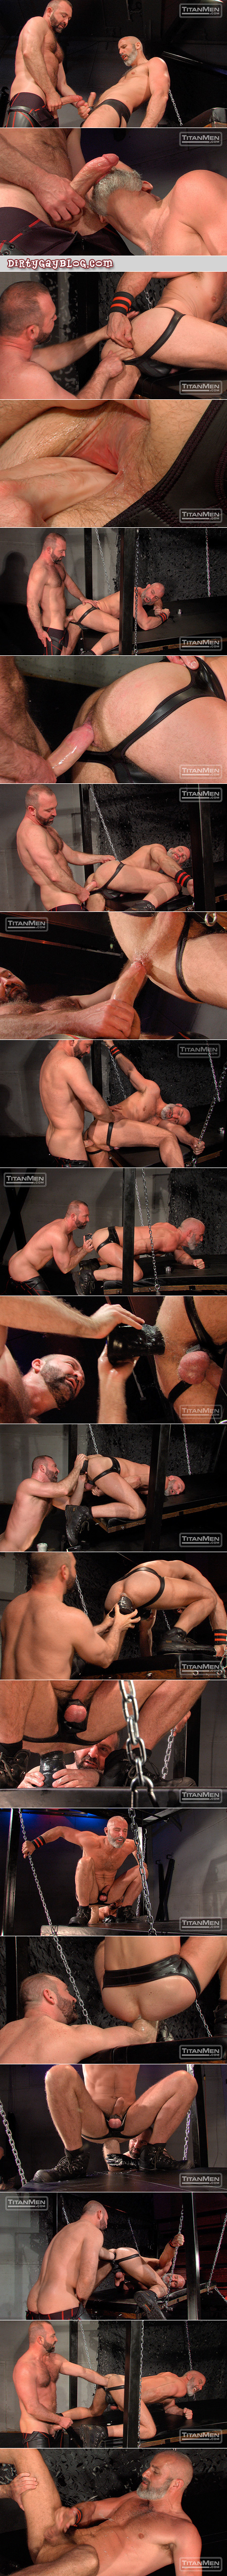 Bald, bearded leather Daddy stretches his asshole with huge dildos and another man's fist.